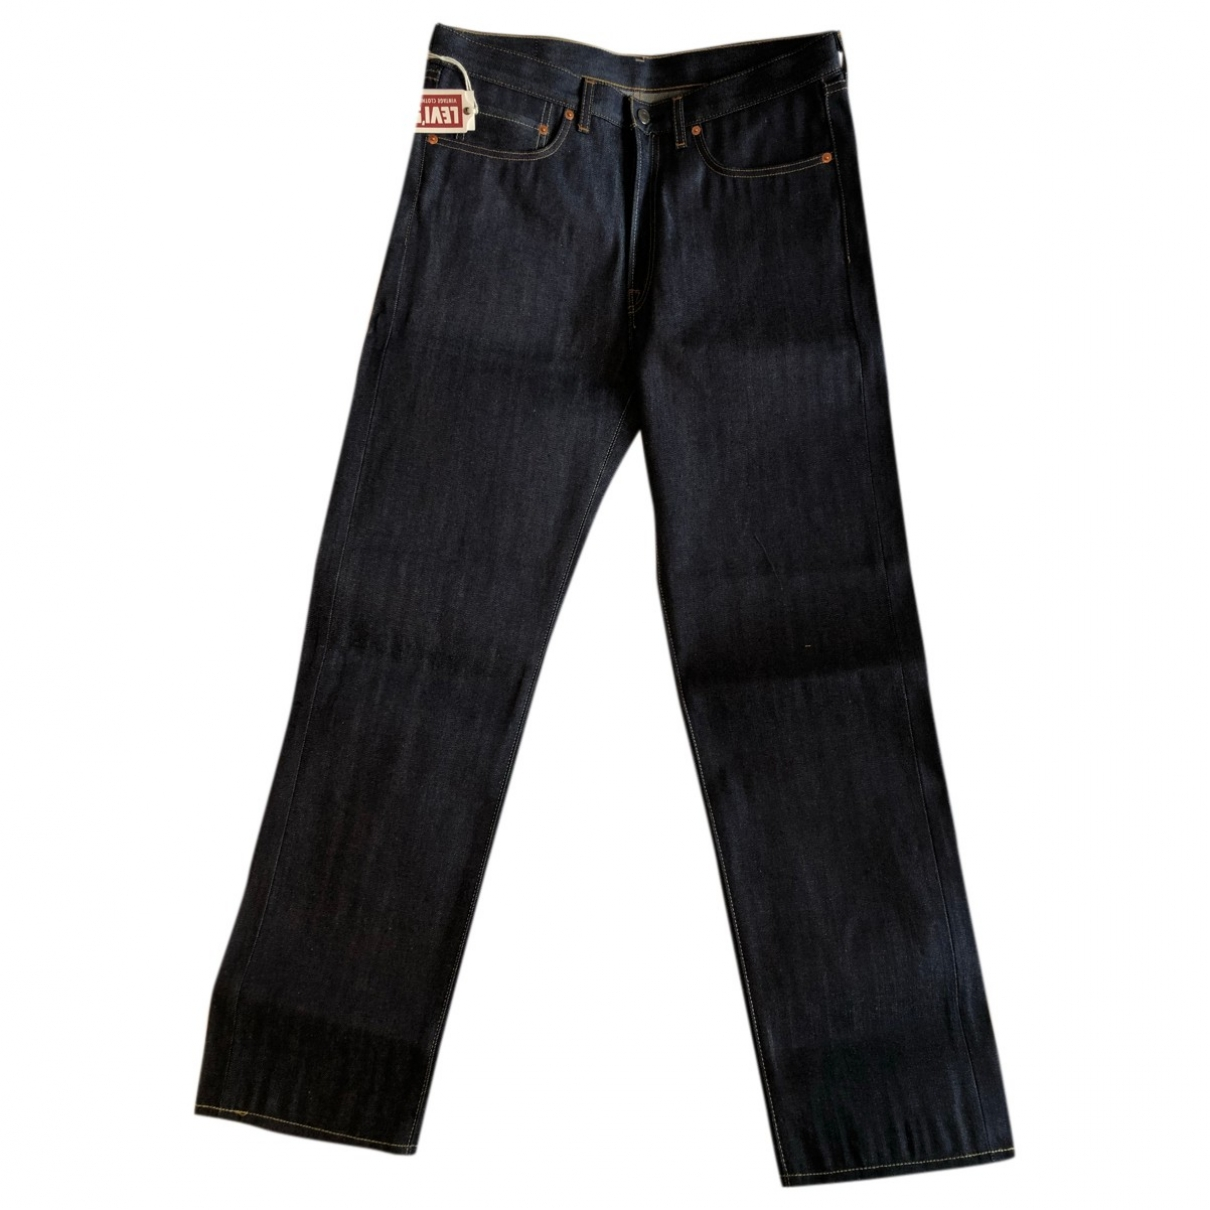 Levi's N Blue Cotton Jeans for Men